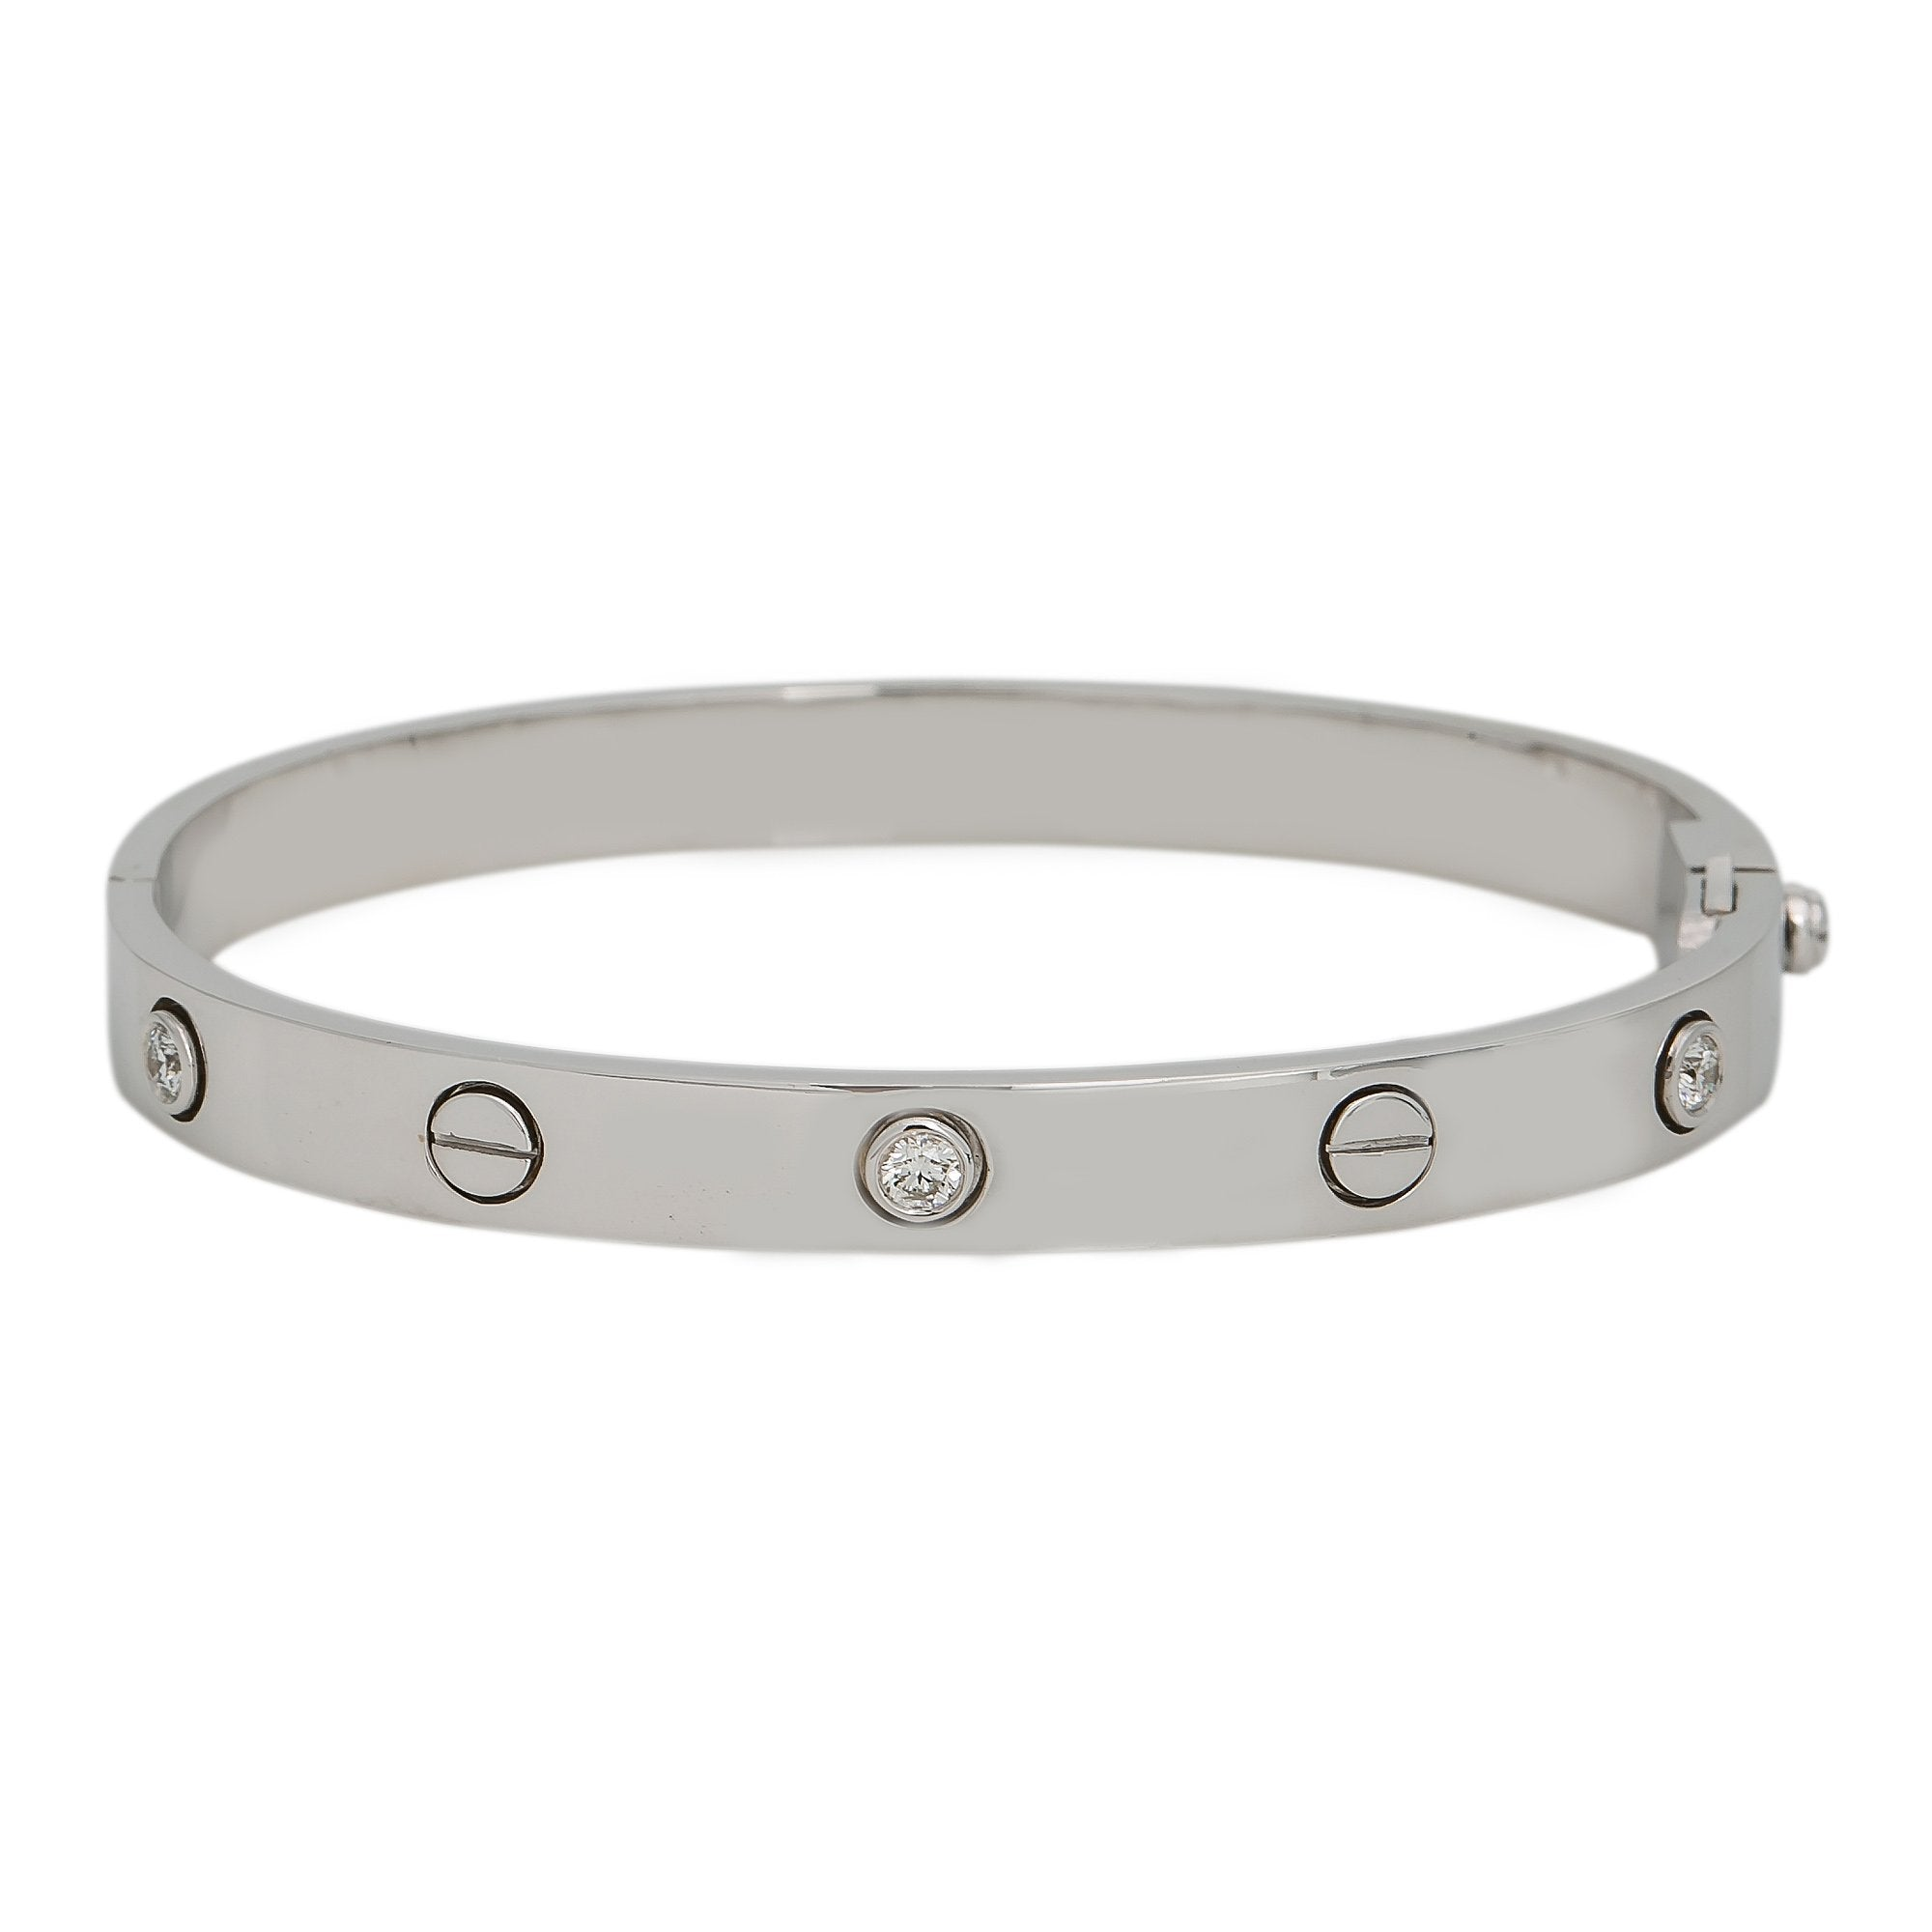 18K WHITE GOLD WOMEN'S BRACELET WITH 0.5 CT DIAMONDS